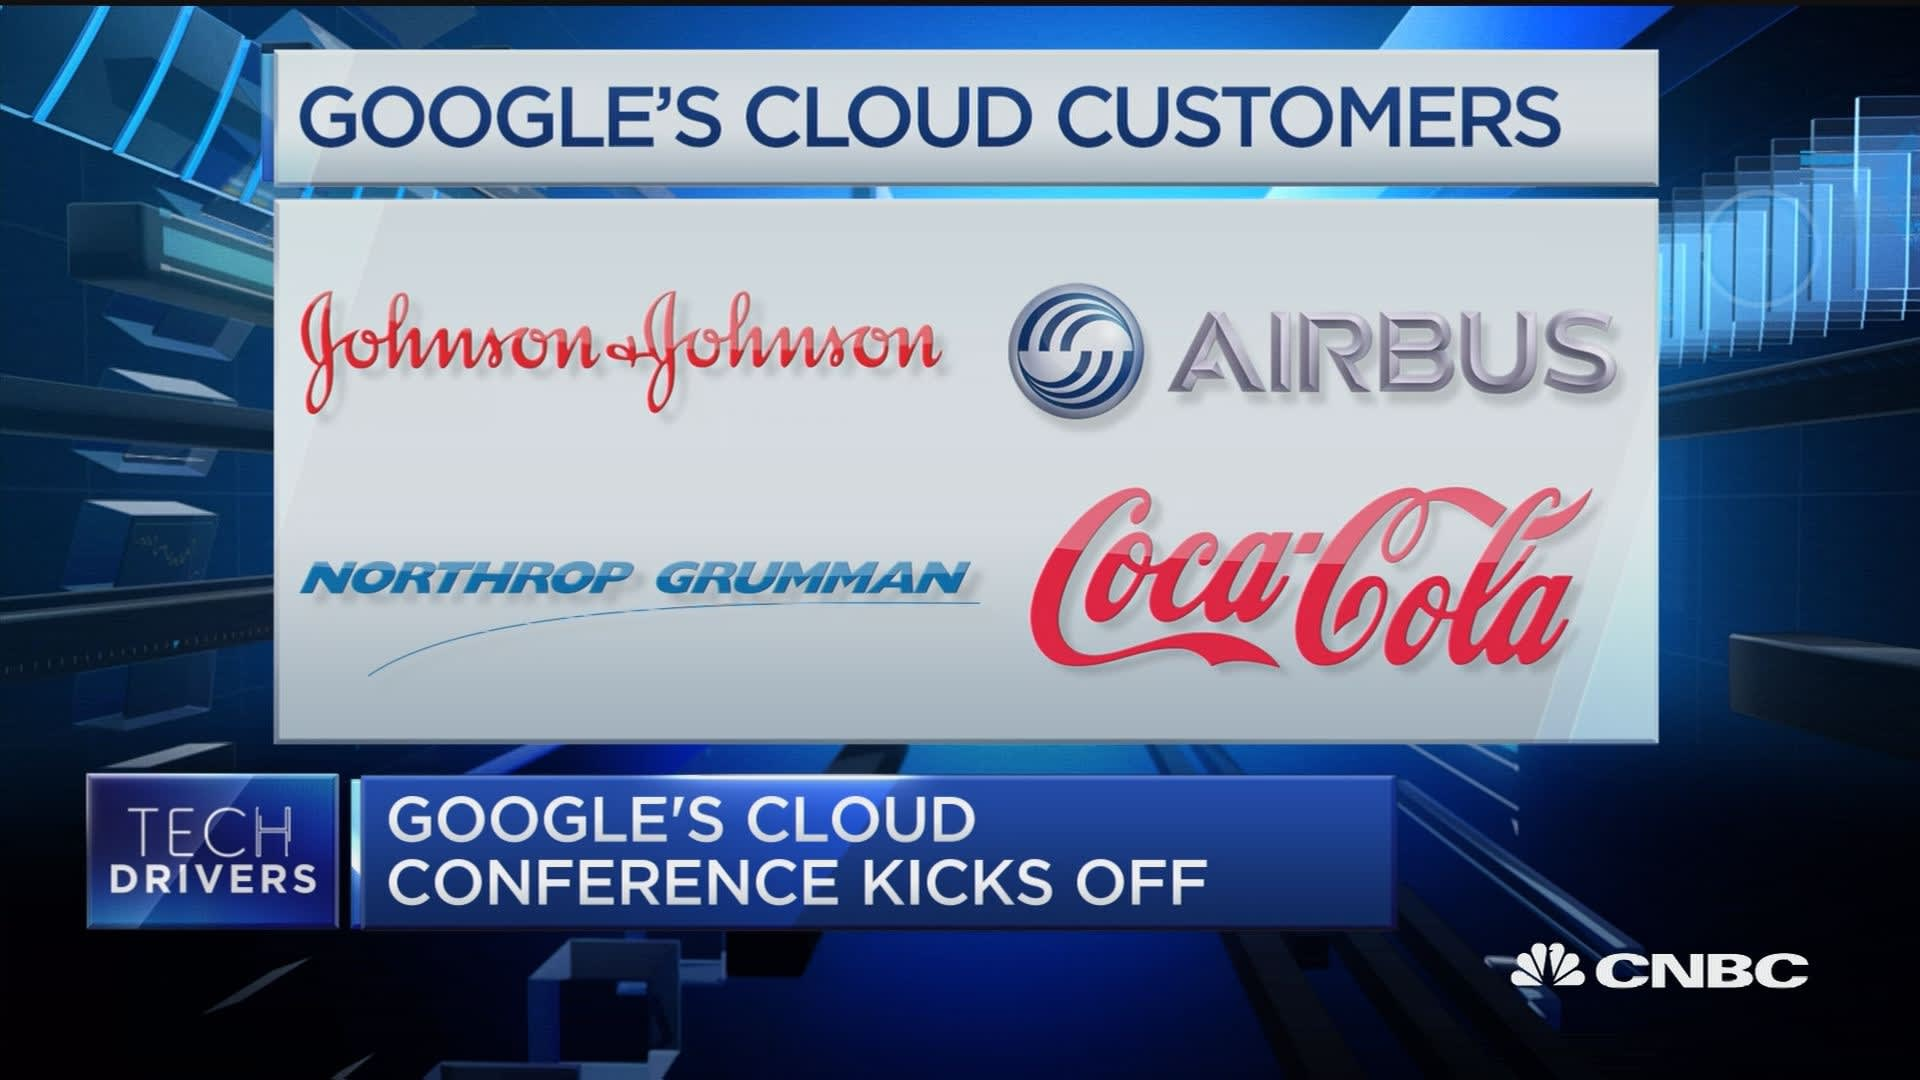 Google's cloud conference kicks off